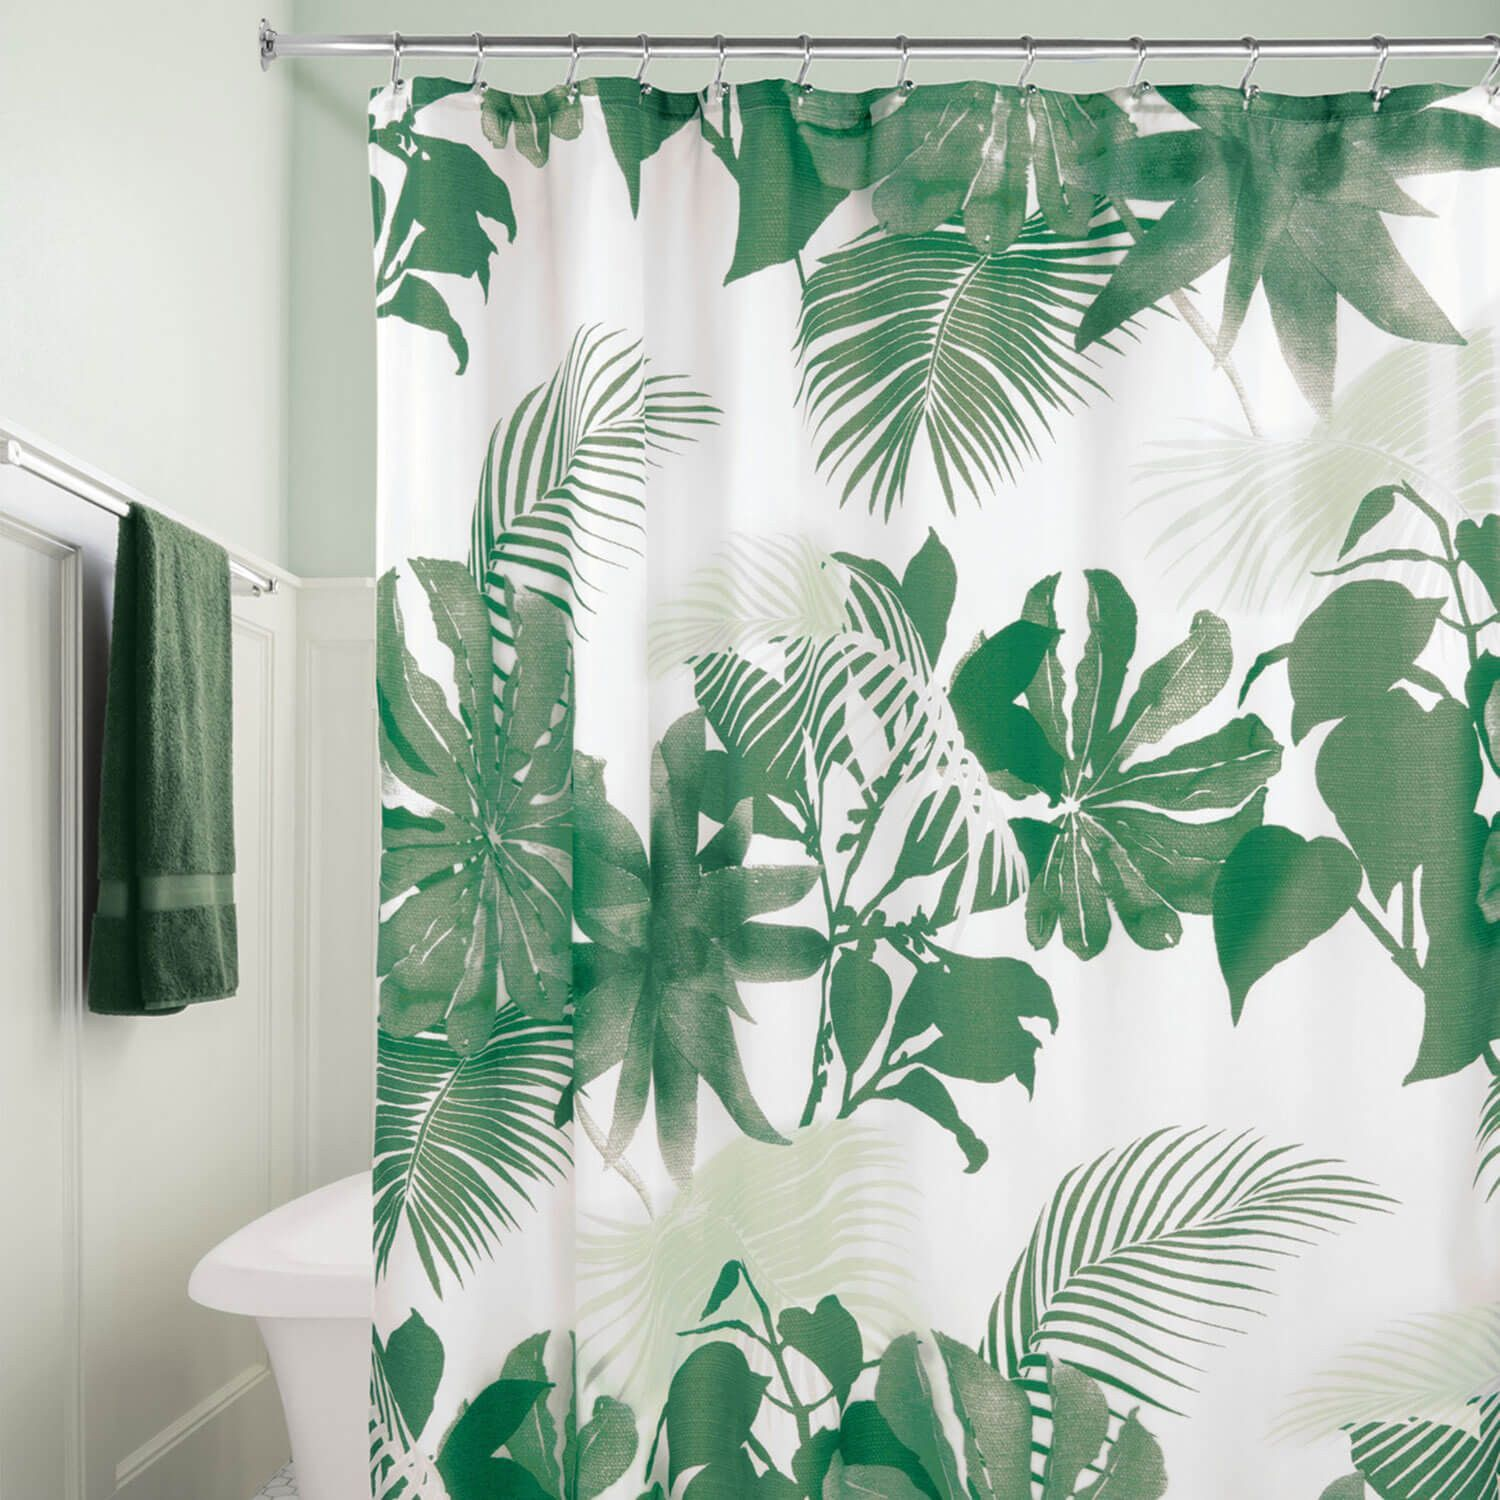 Fern Shower Curtain Fabric Shower Curtains Curtains Watercolor Shower Curtain